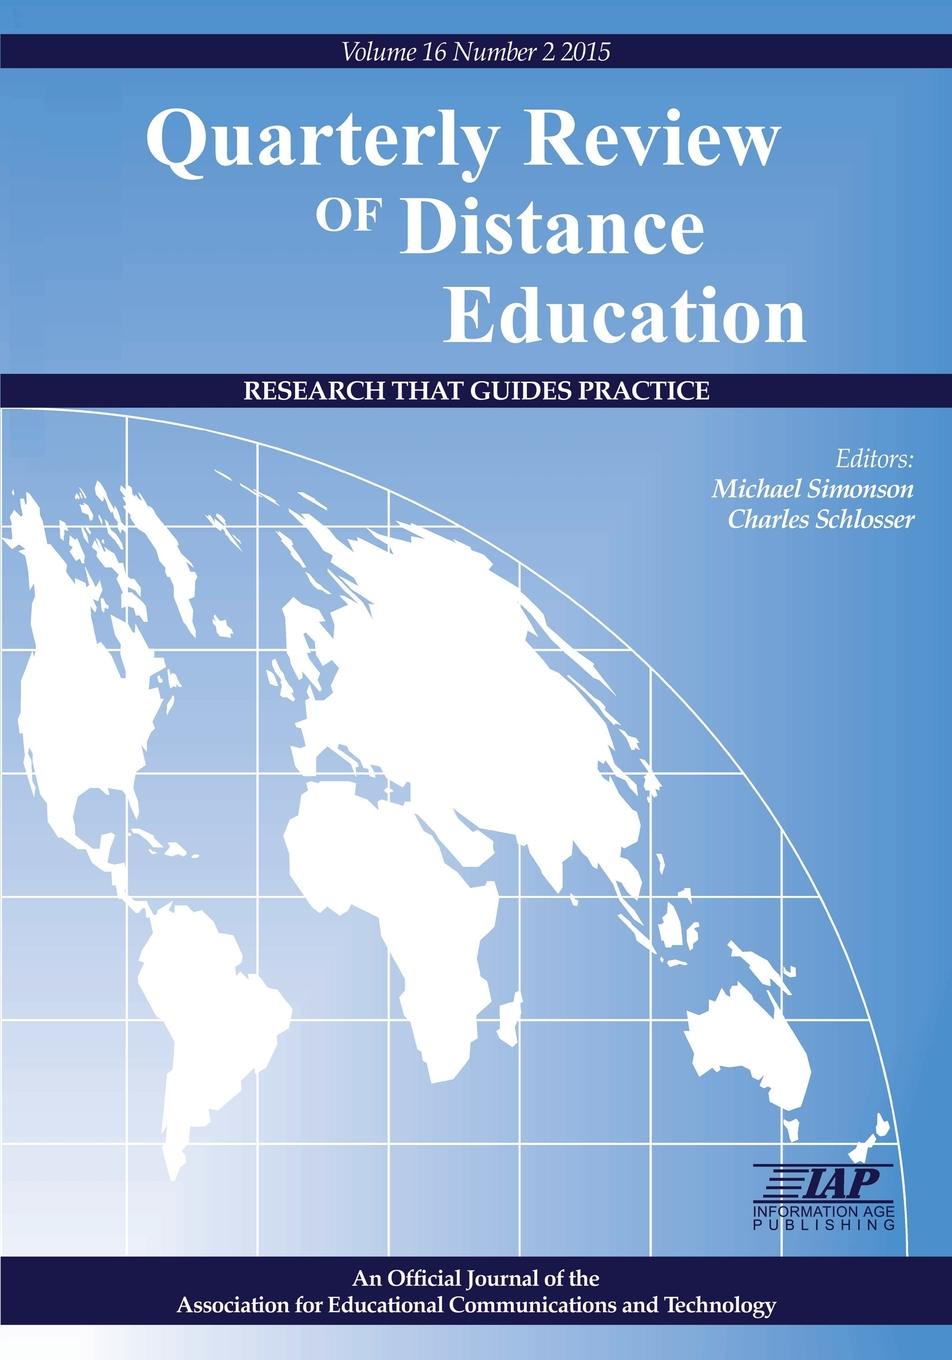 Quarterly Review of Distance Education Volume 16, Number 2, 2015 недорго, оригинальная цена